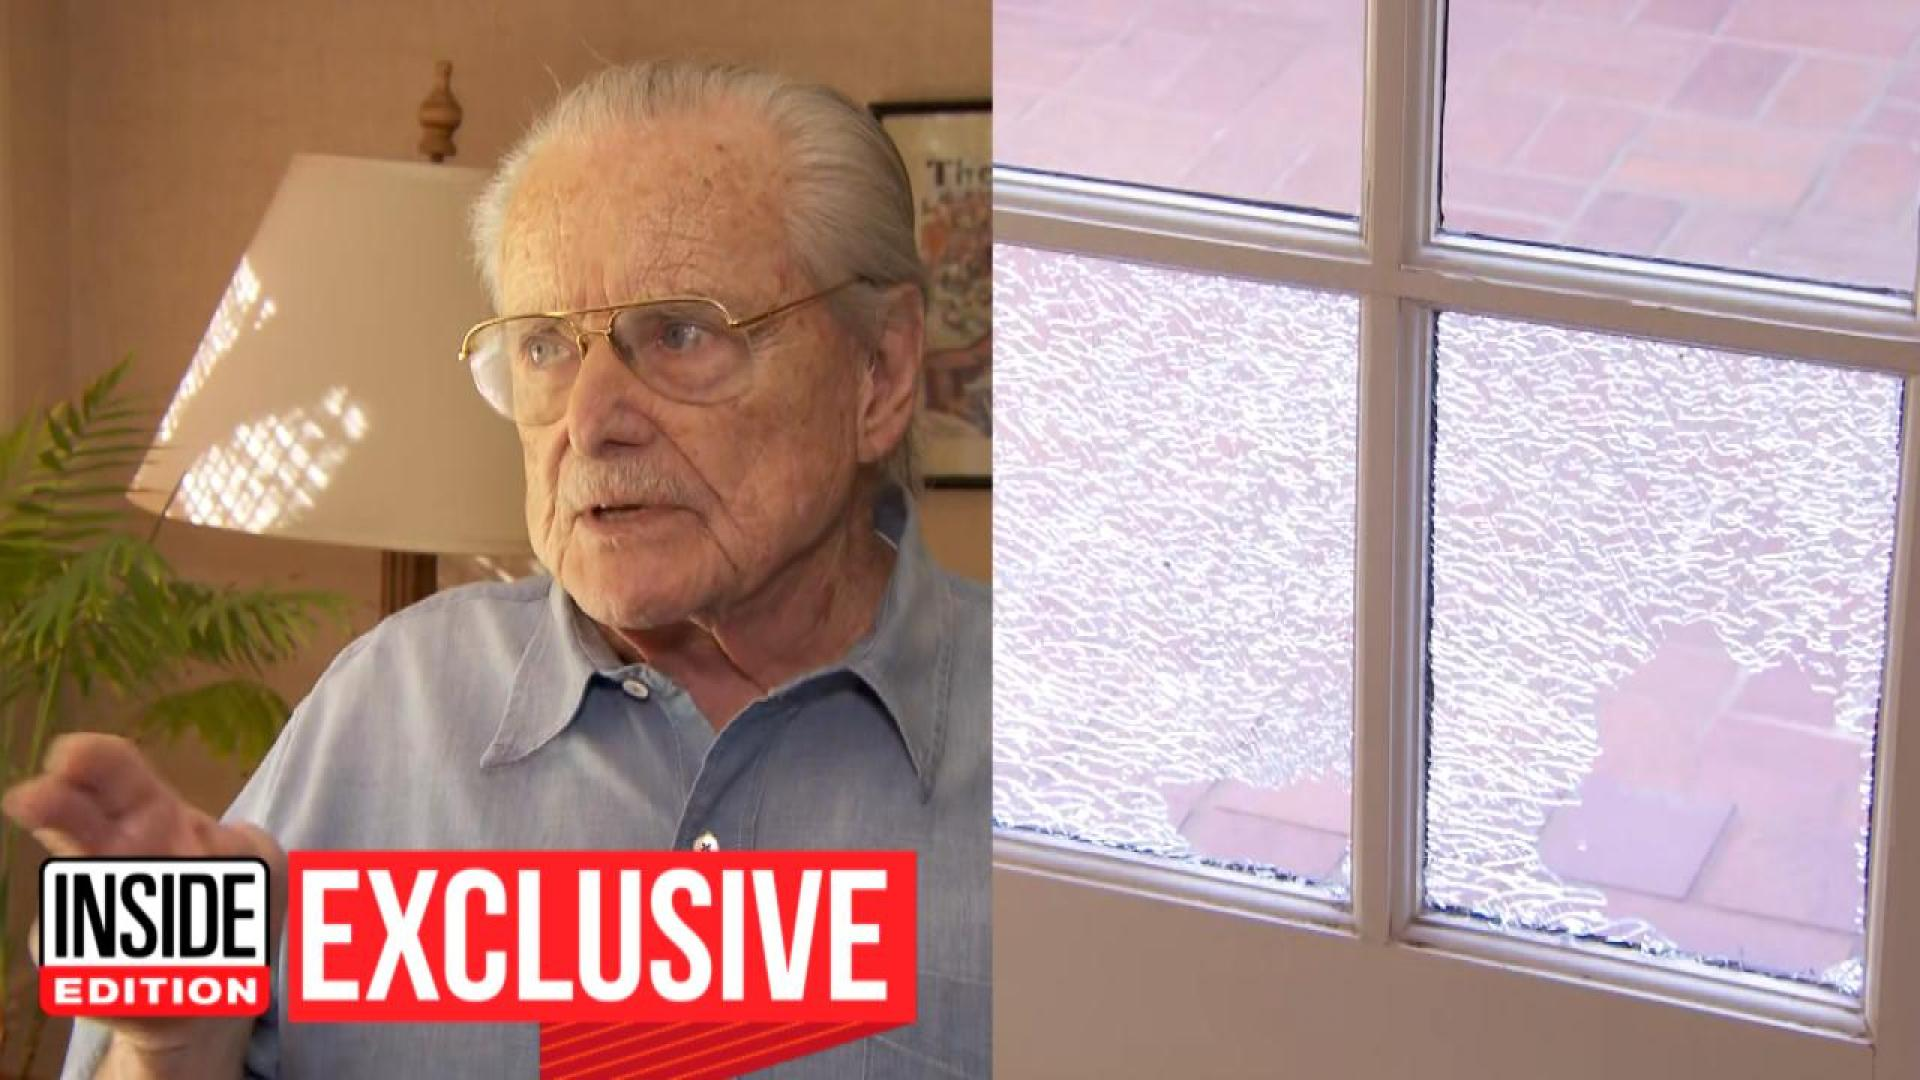 Boy Meets World\' Star Stops Burglary at 91: \'Never Mess With ...